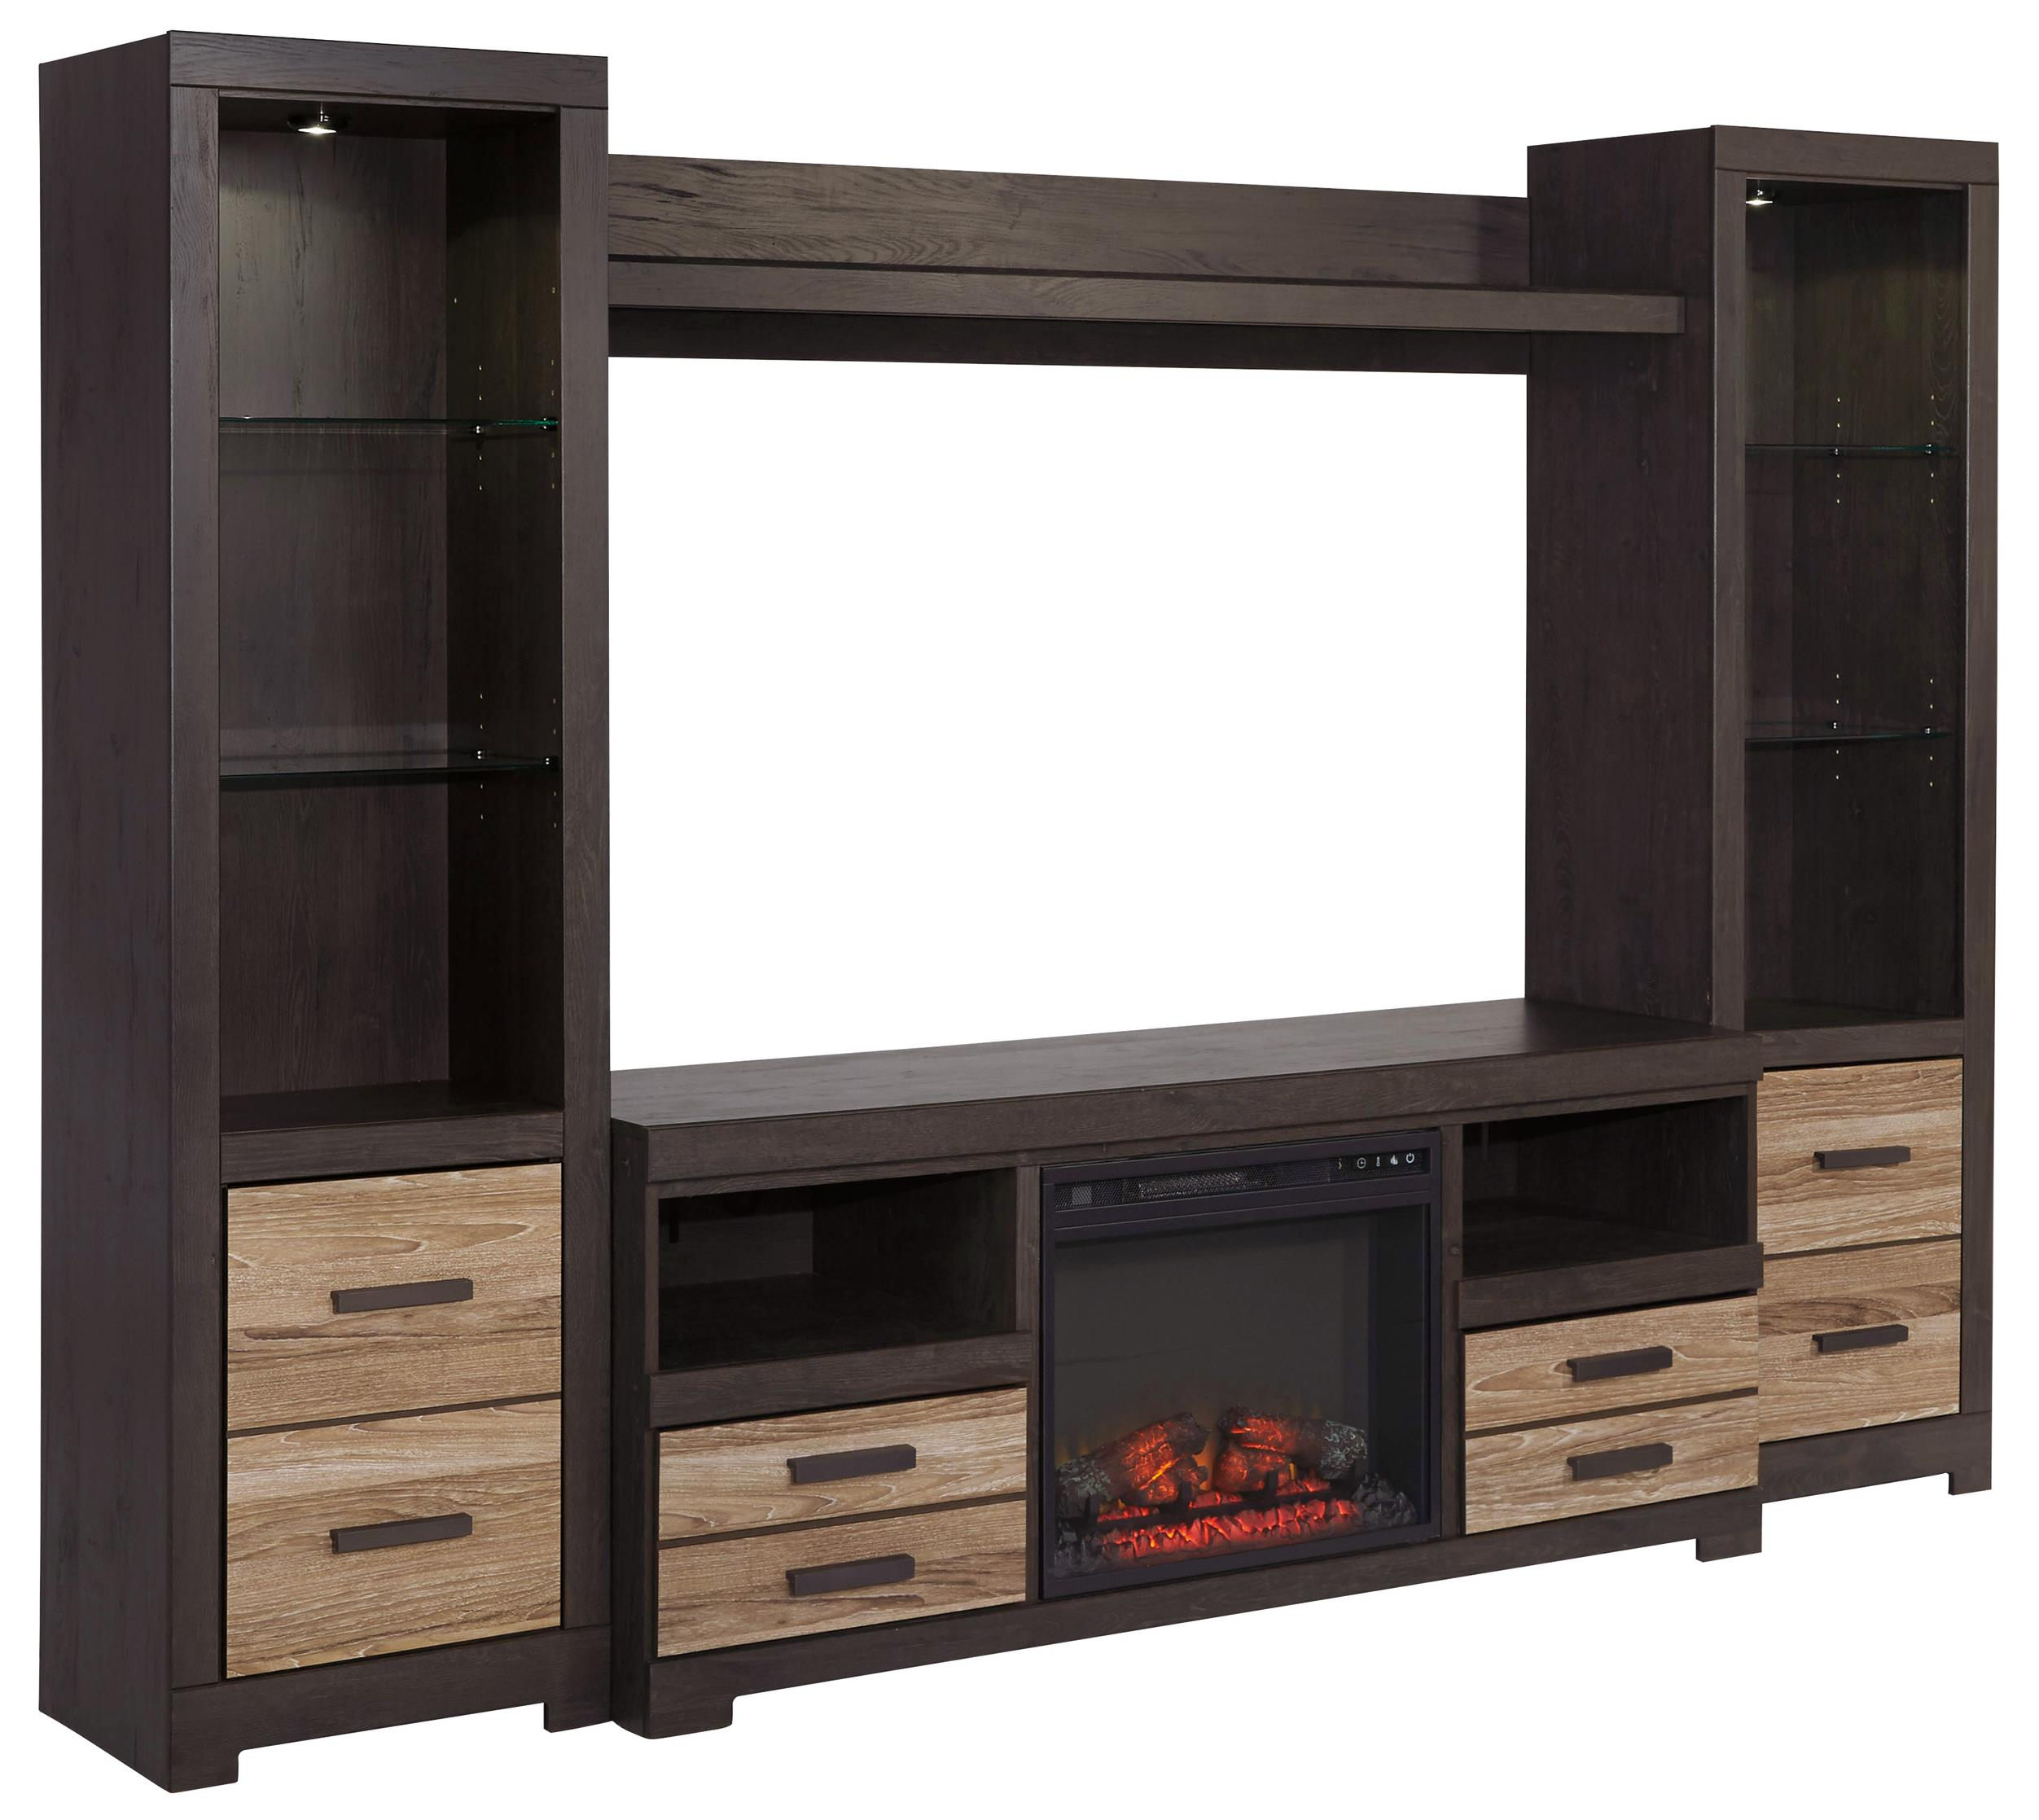 Signature Design by Ashley Harlinton TV Stand w/ Fireplace & 2 Piers w/ Bridge - Item Number: W325-68+2x24+27+W100-01